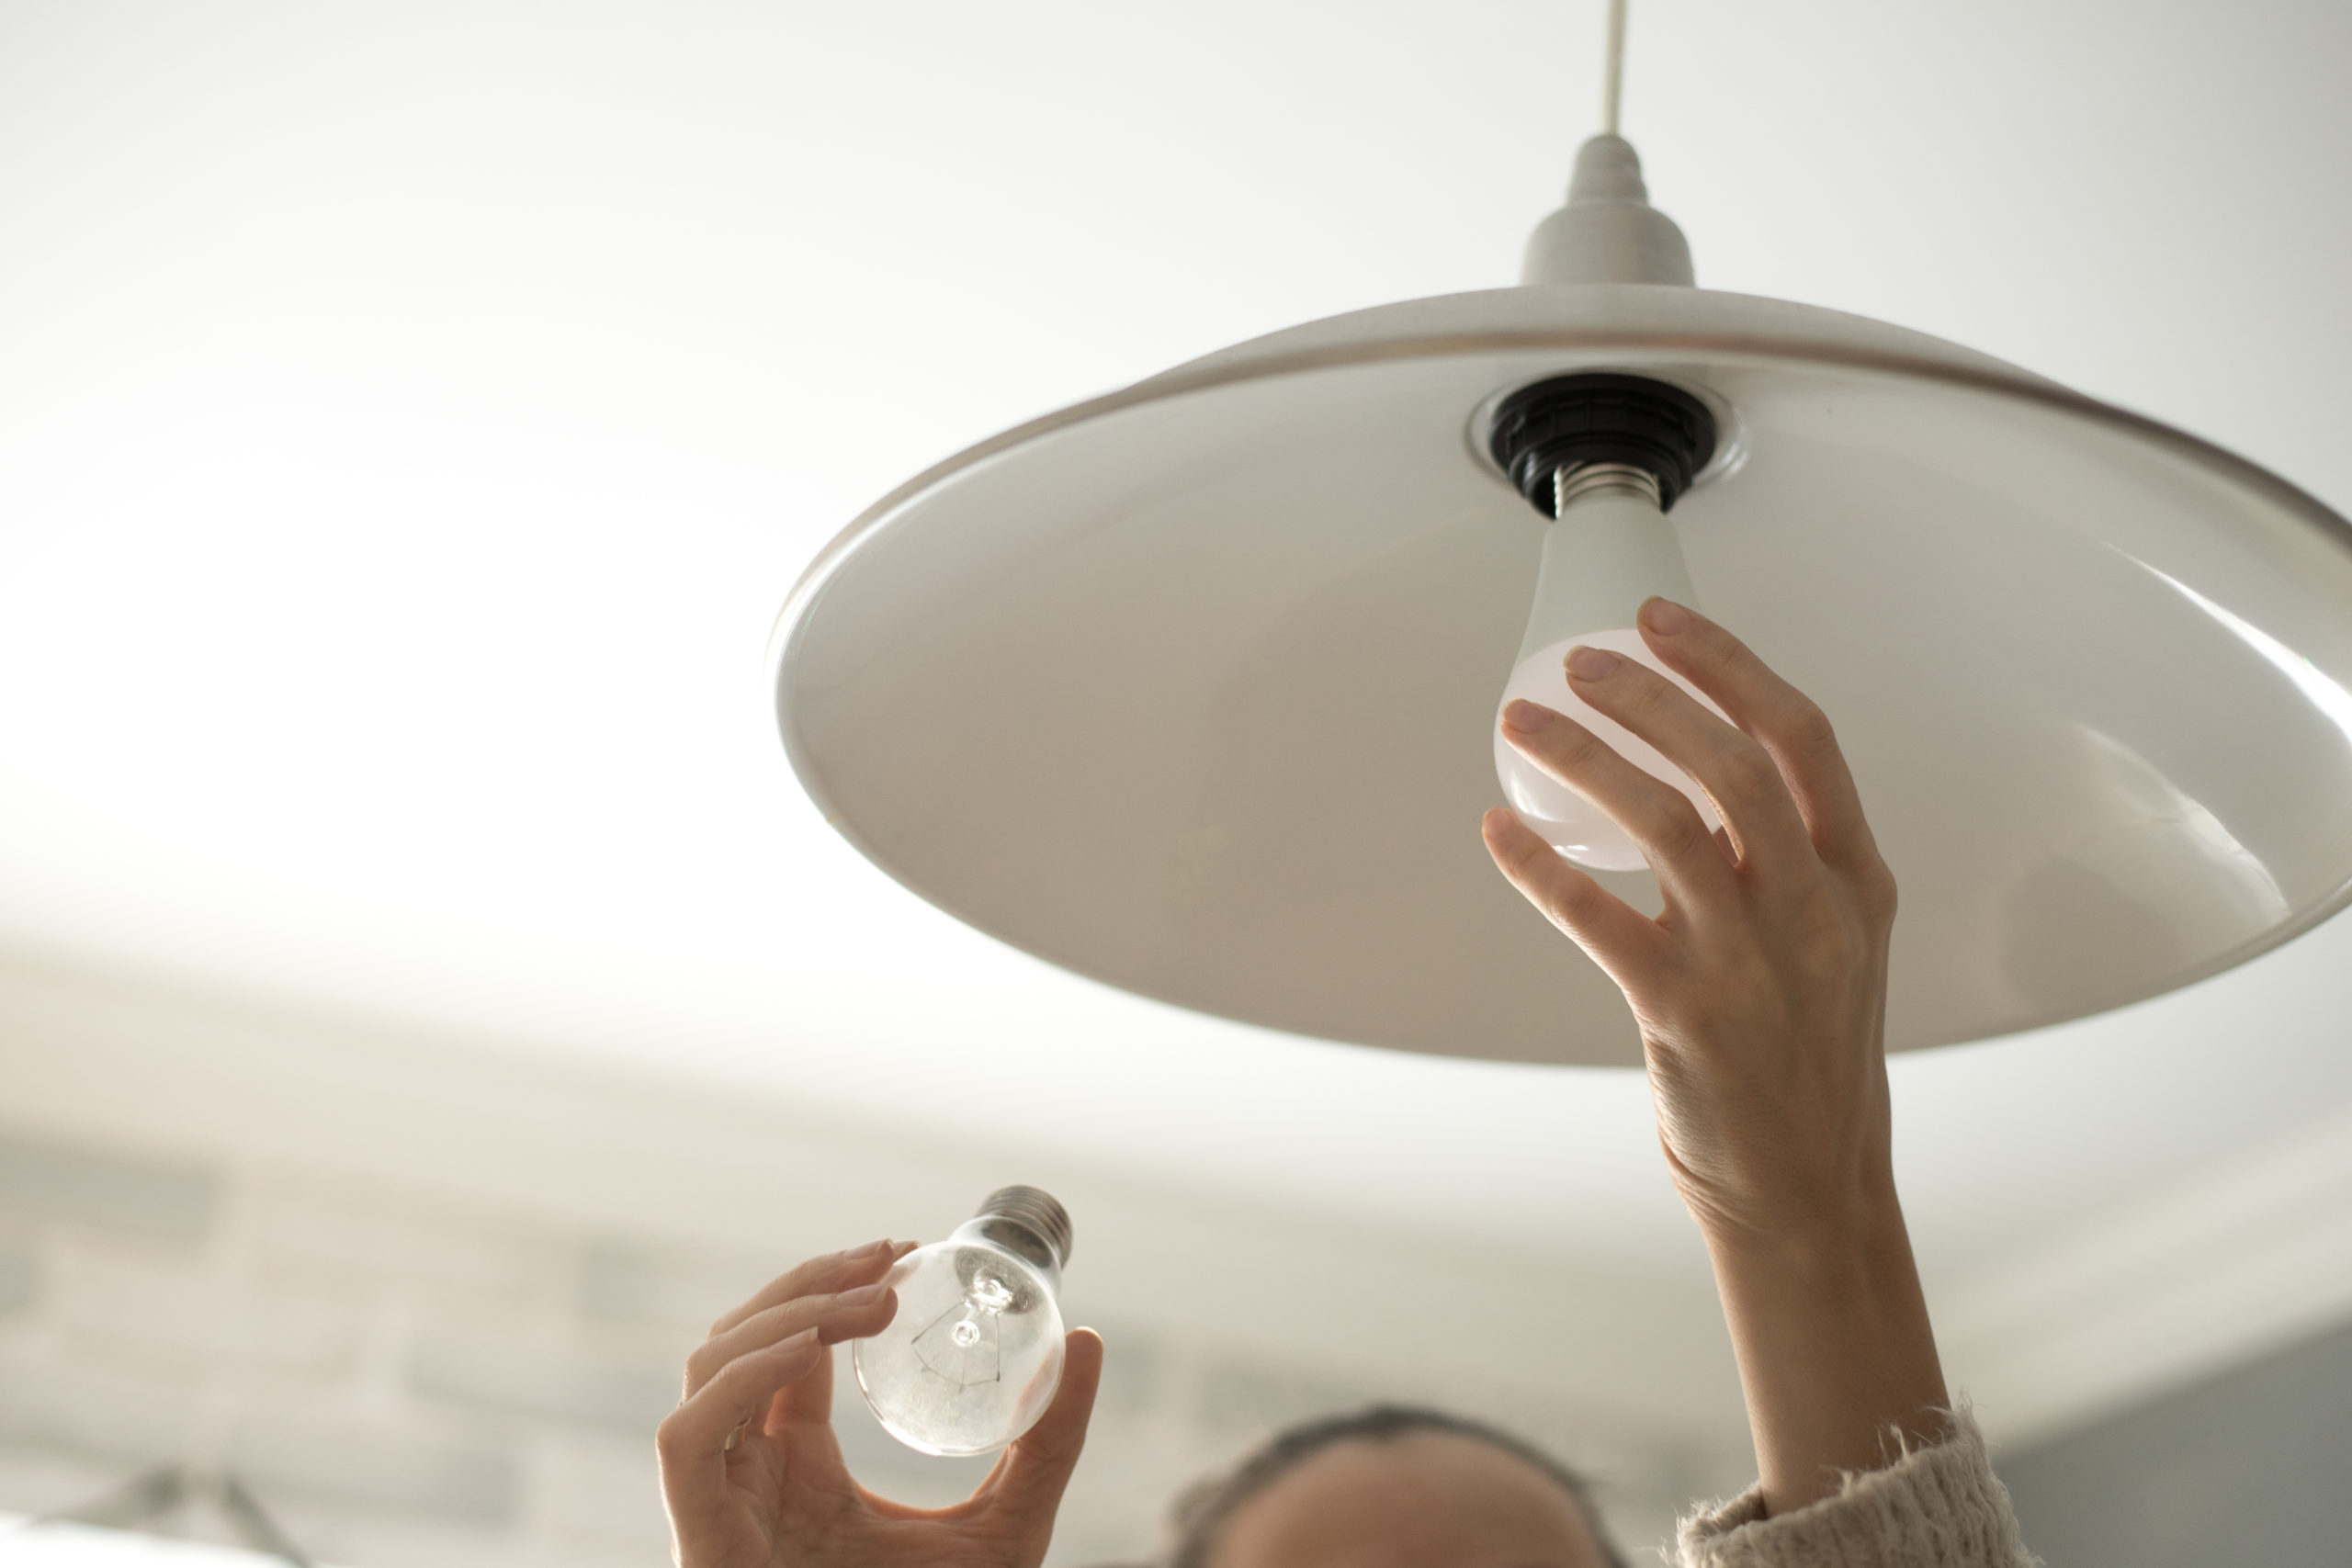 A pair of hands changing a lightbulb because home improvement is a useful way to spend the extra time in the house.